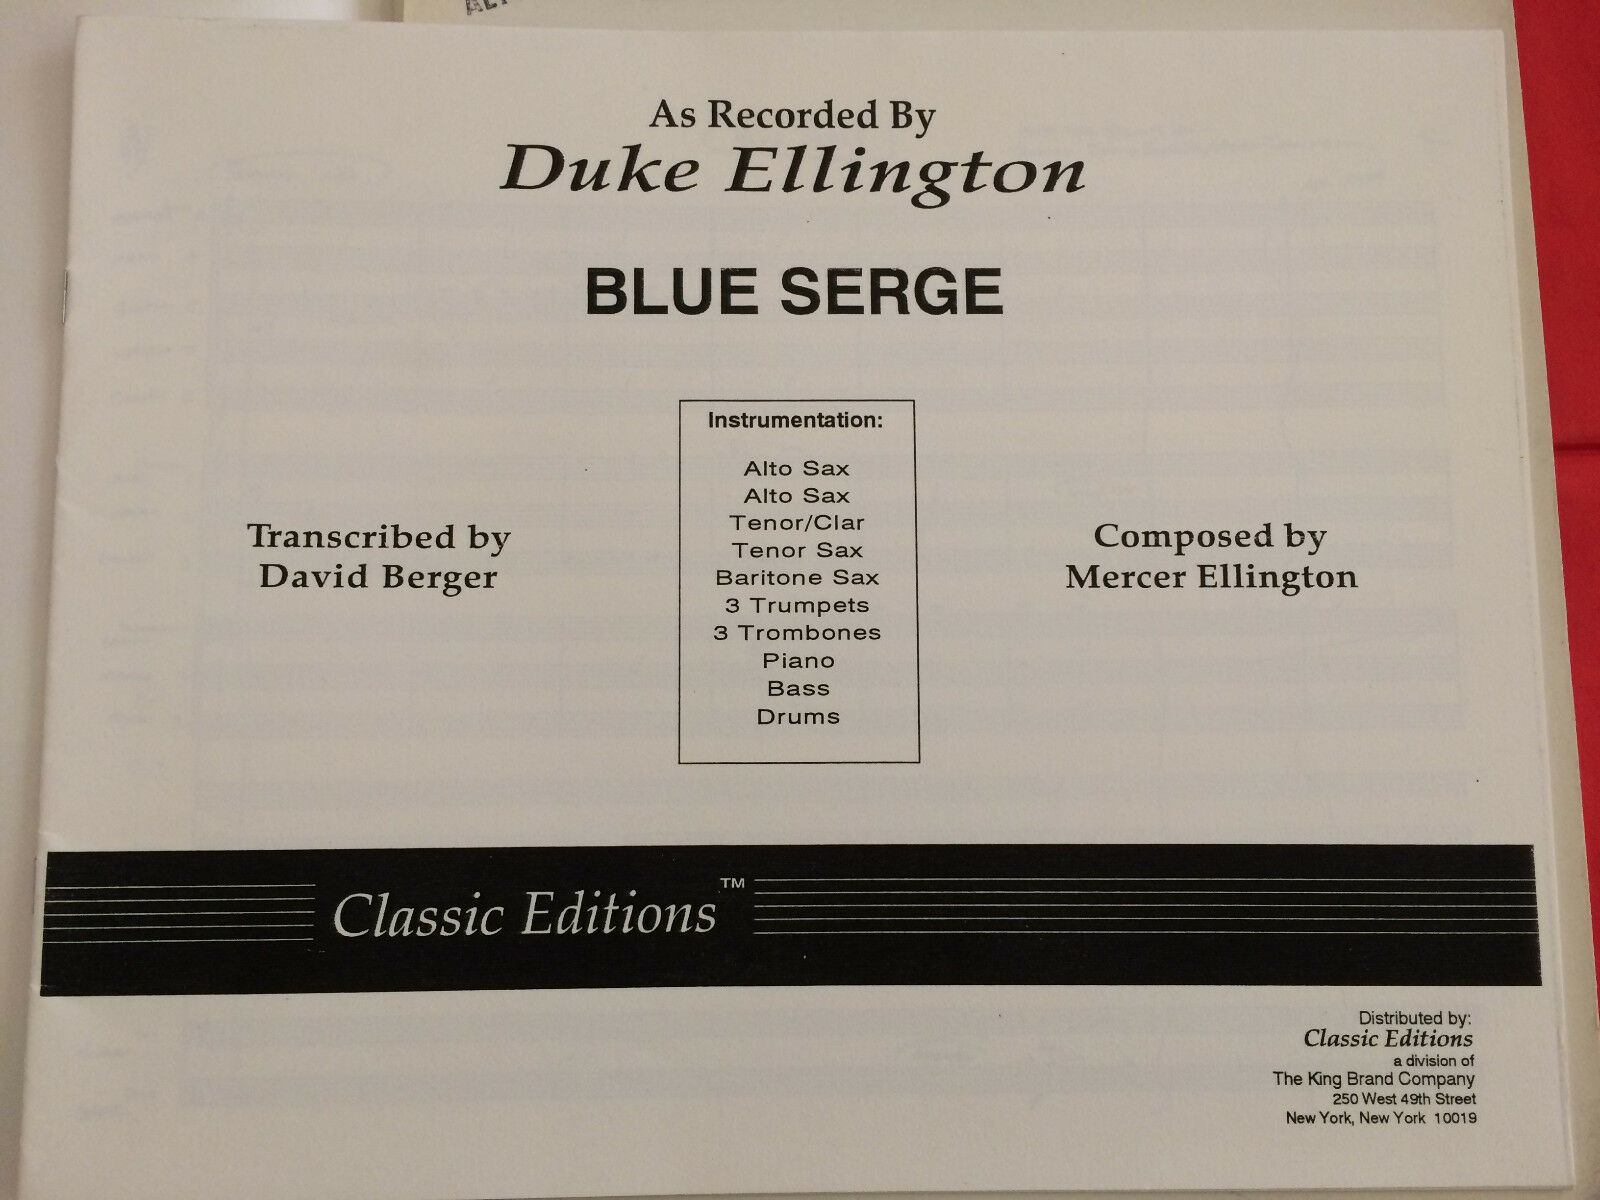 Blau Serge, Mercer Ellington, transcr. D. Berger, Big Band